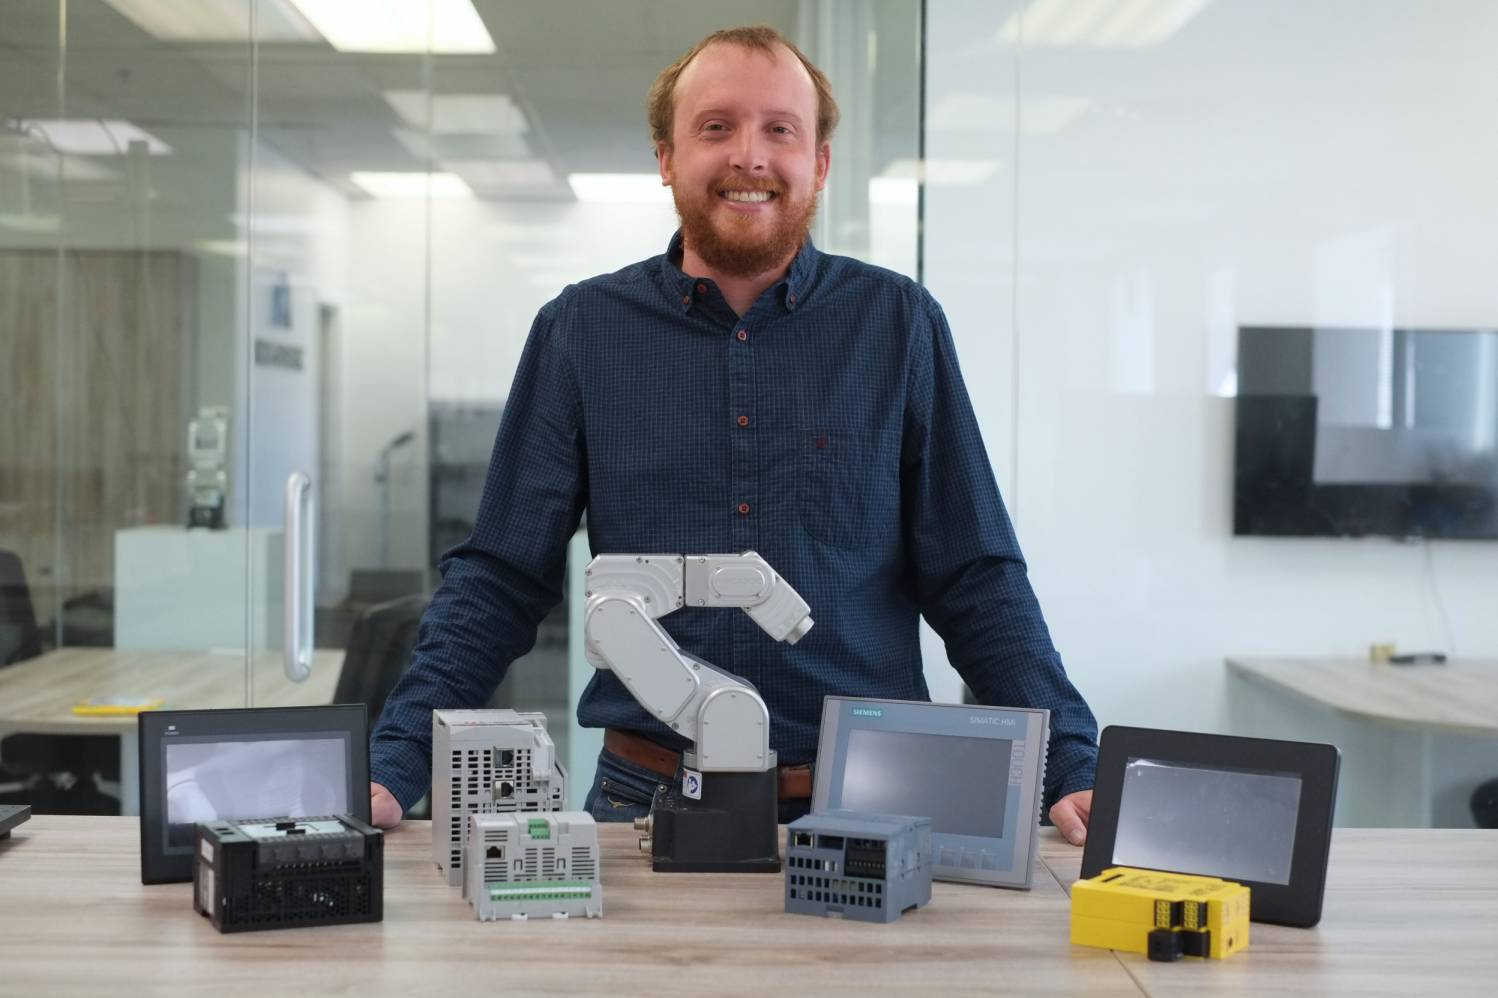 Alexandre Pérusse with the Meca500 and various PLCs and HMIs